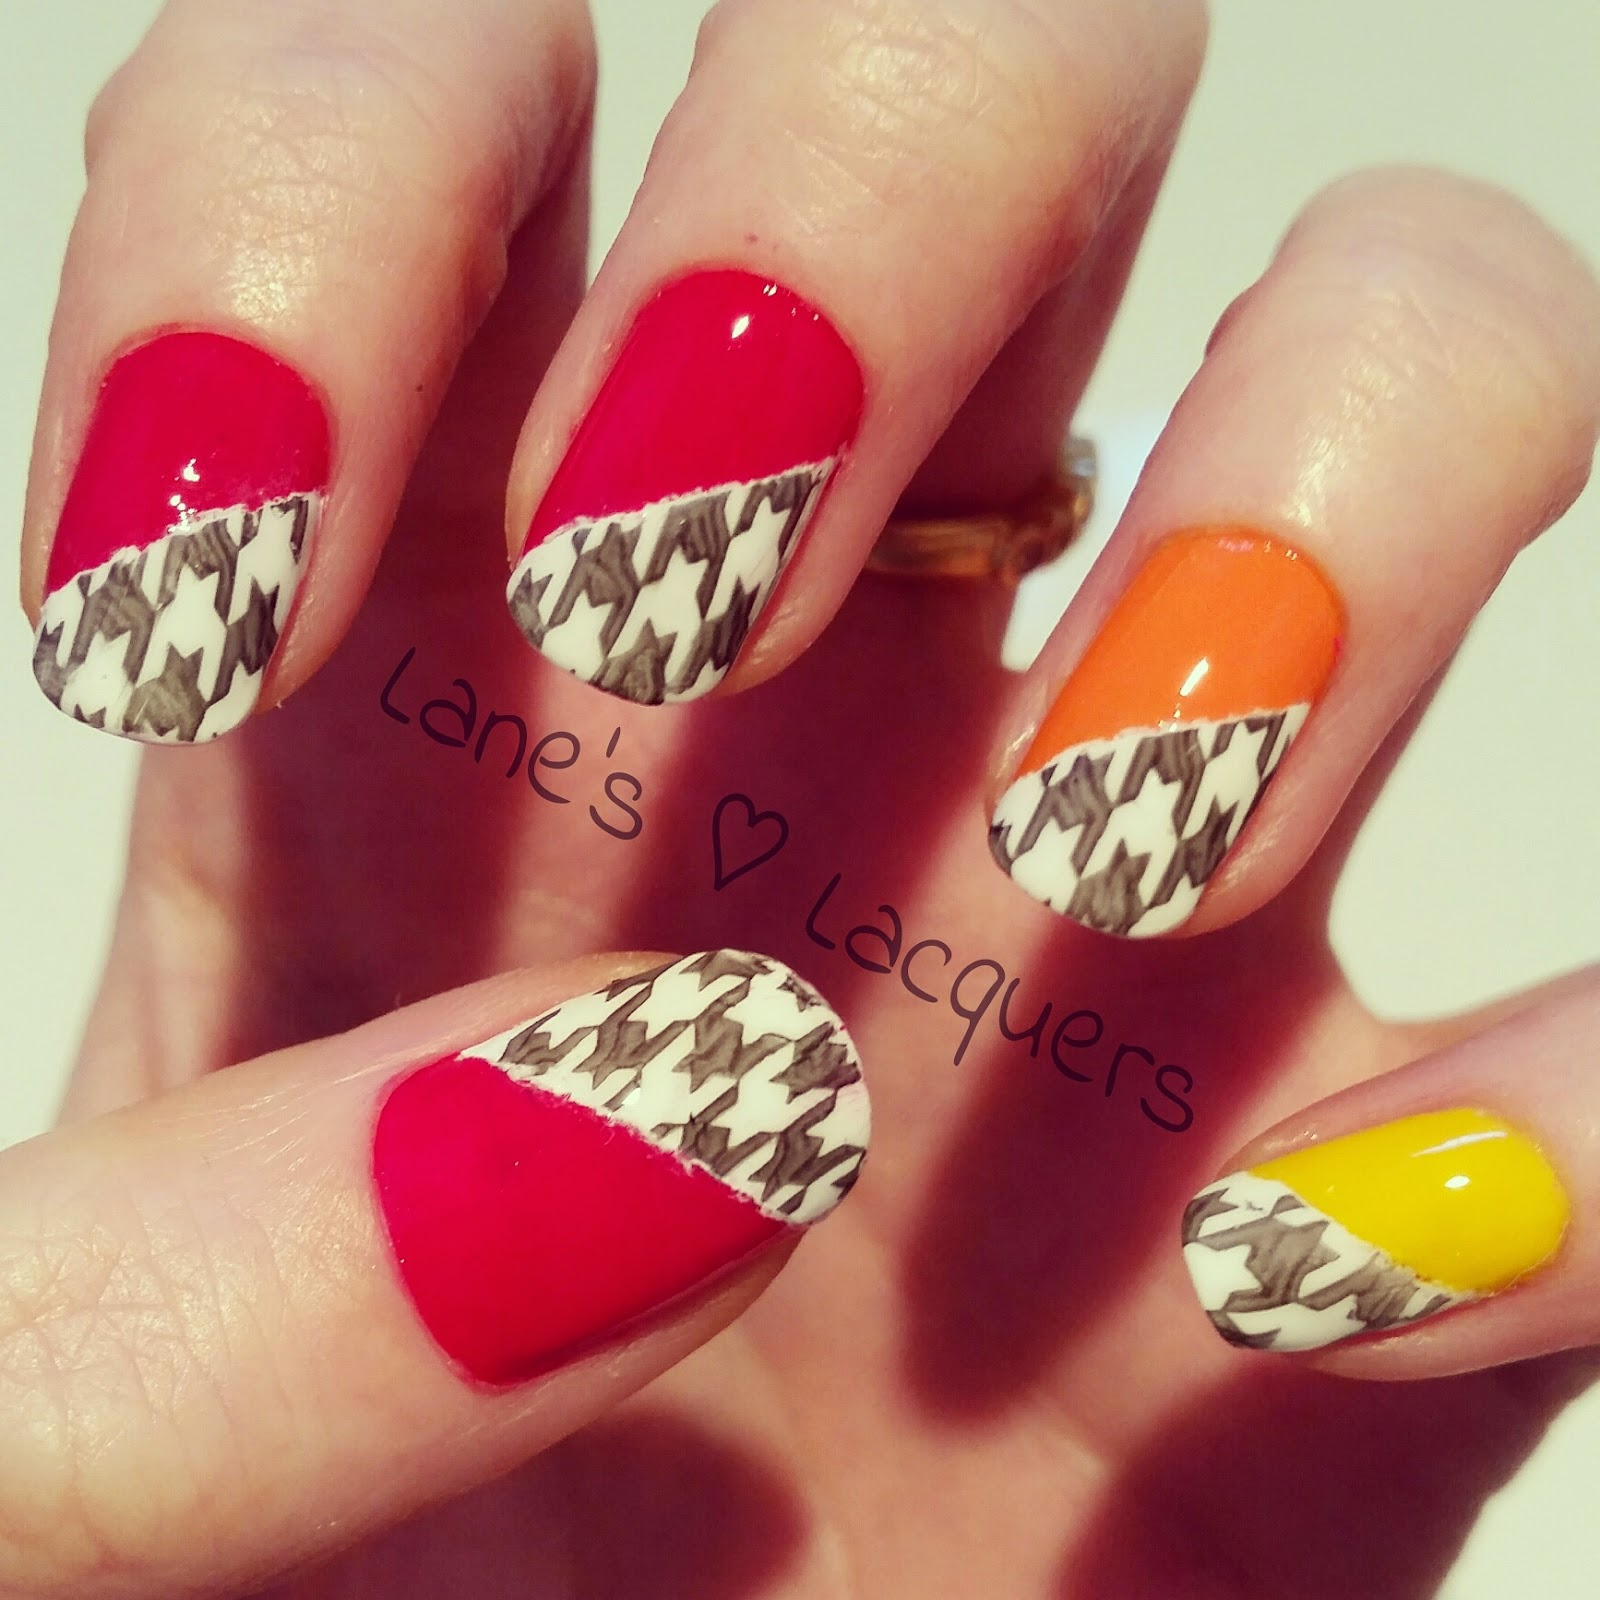 barry-m-skittle-houndstooth-nail-art